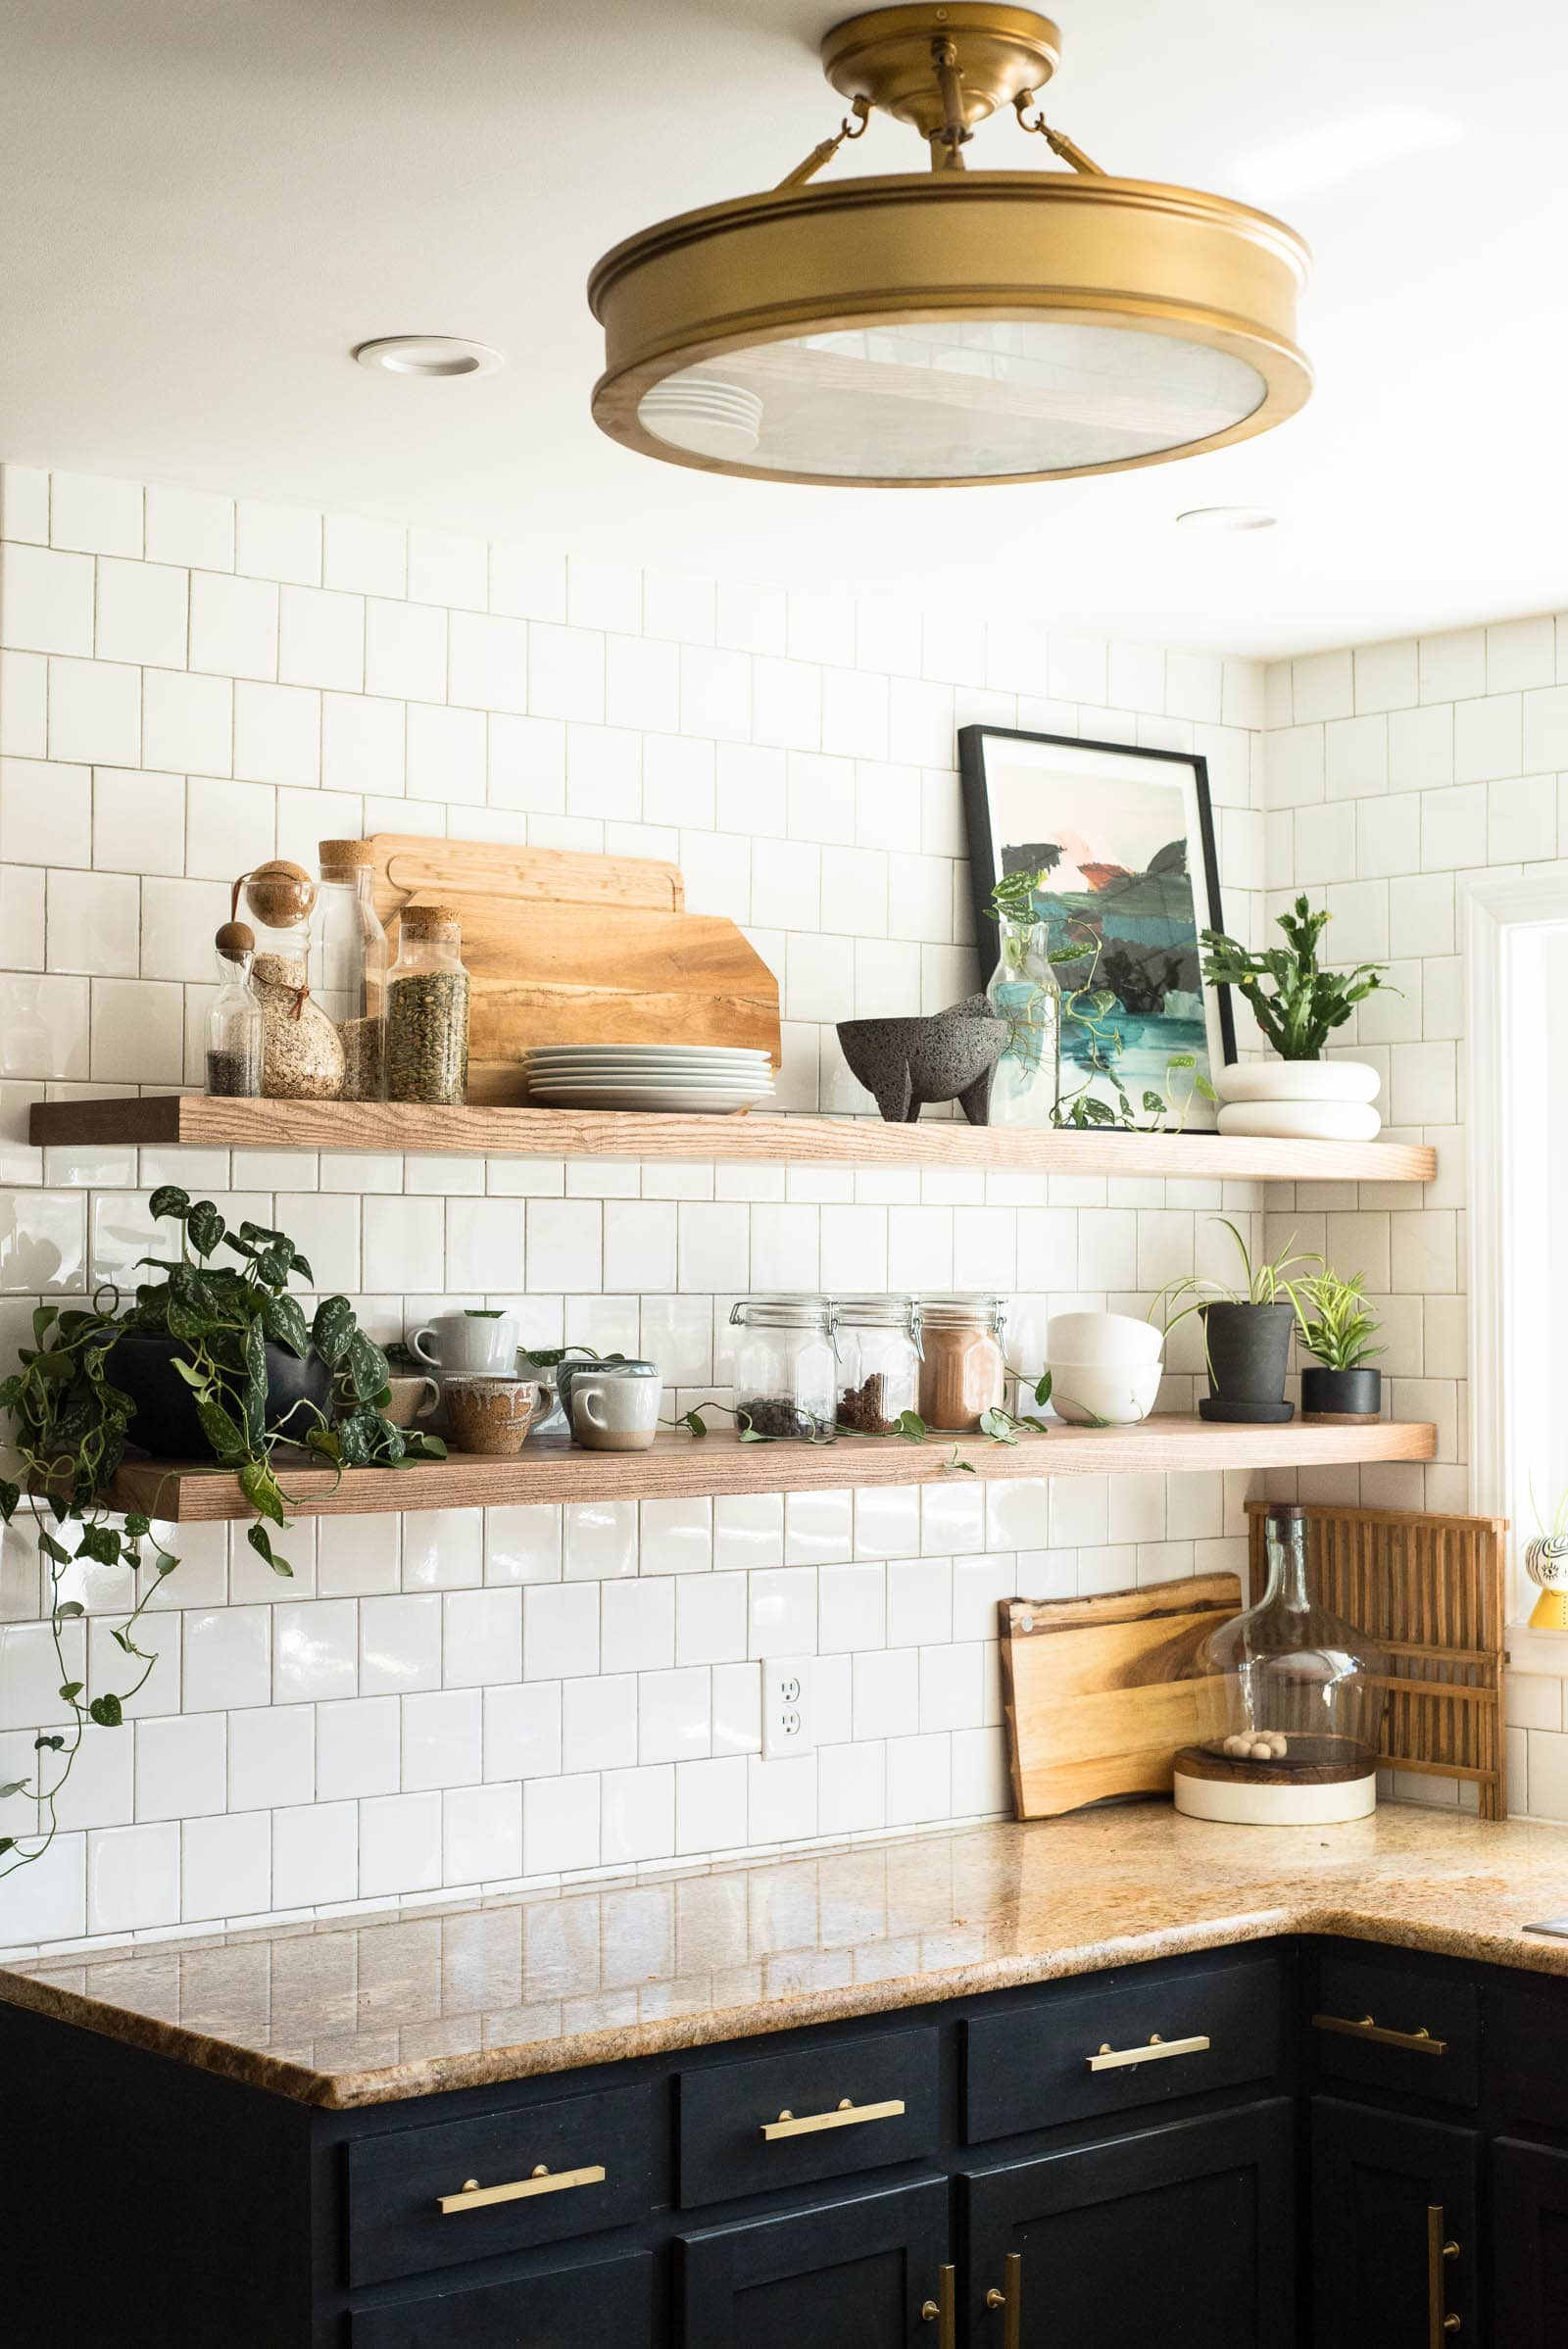 Plants on kitchen shelves